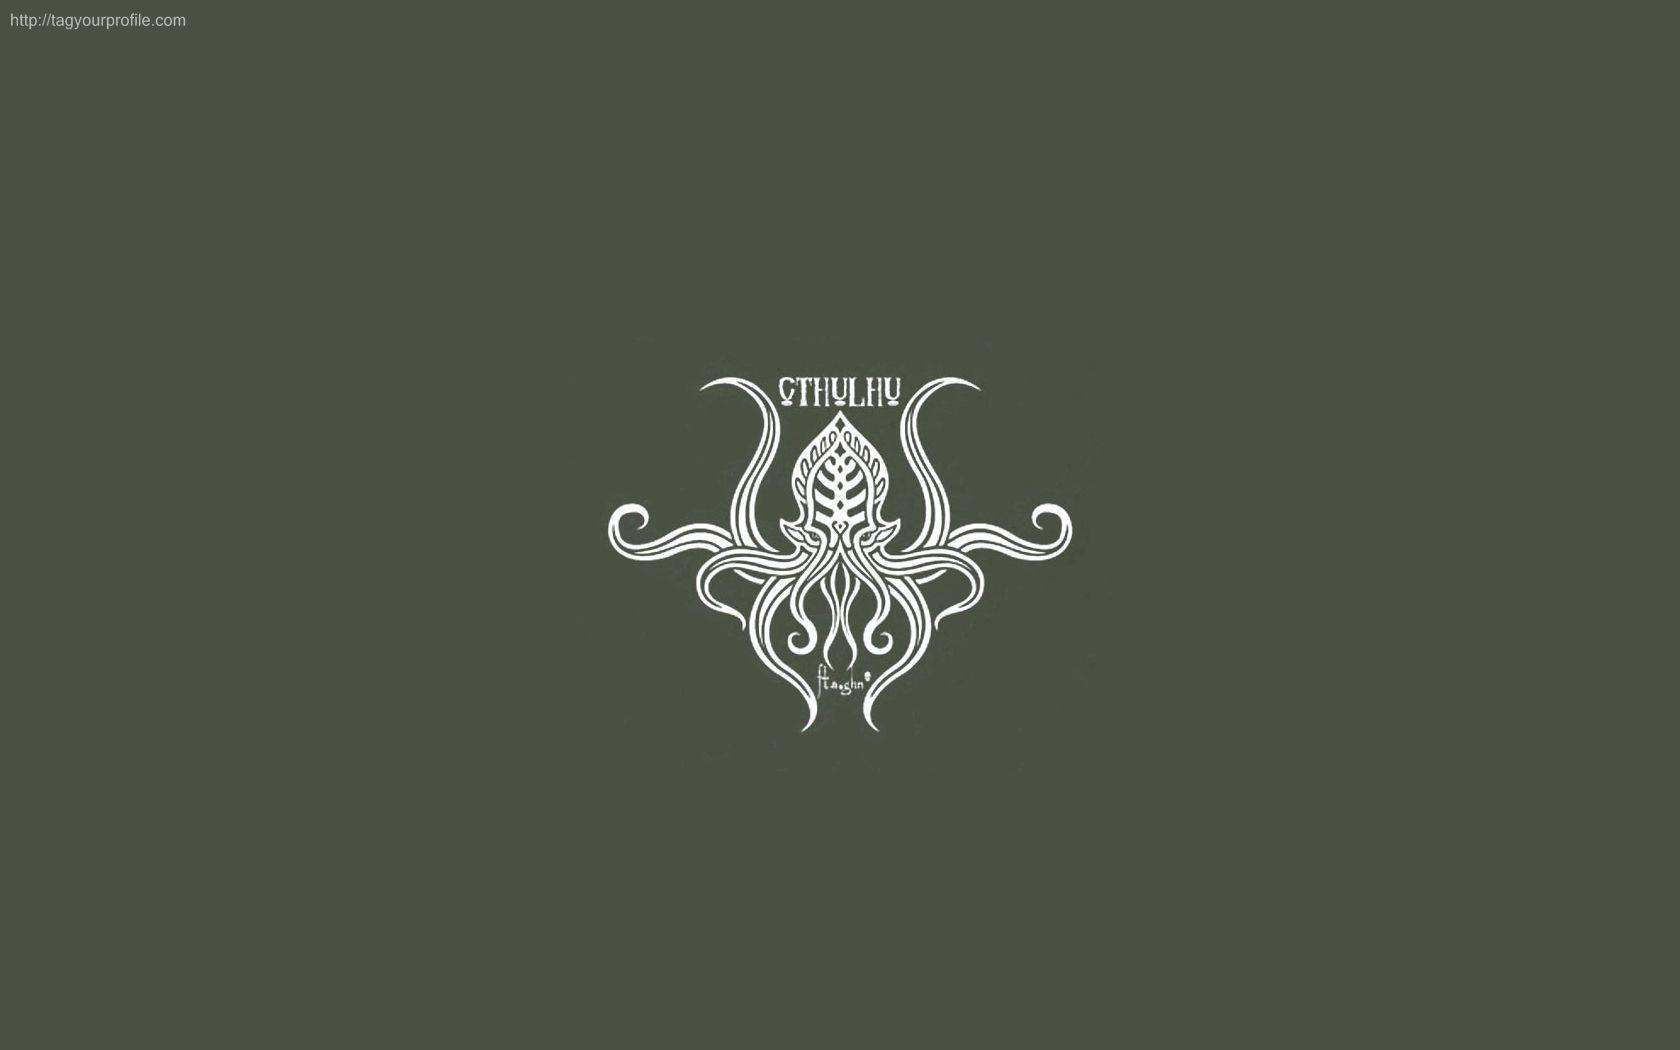 Cthulhu Wallpapers 1680x1050 px Free Download